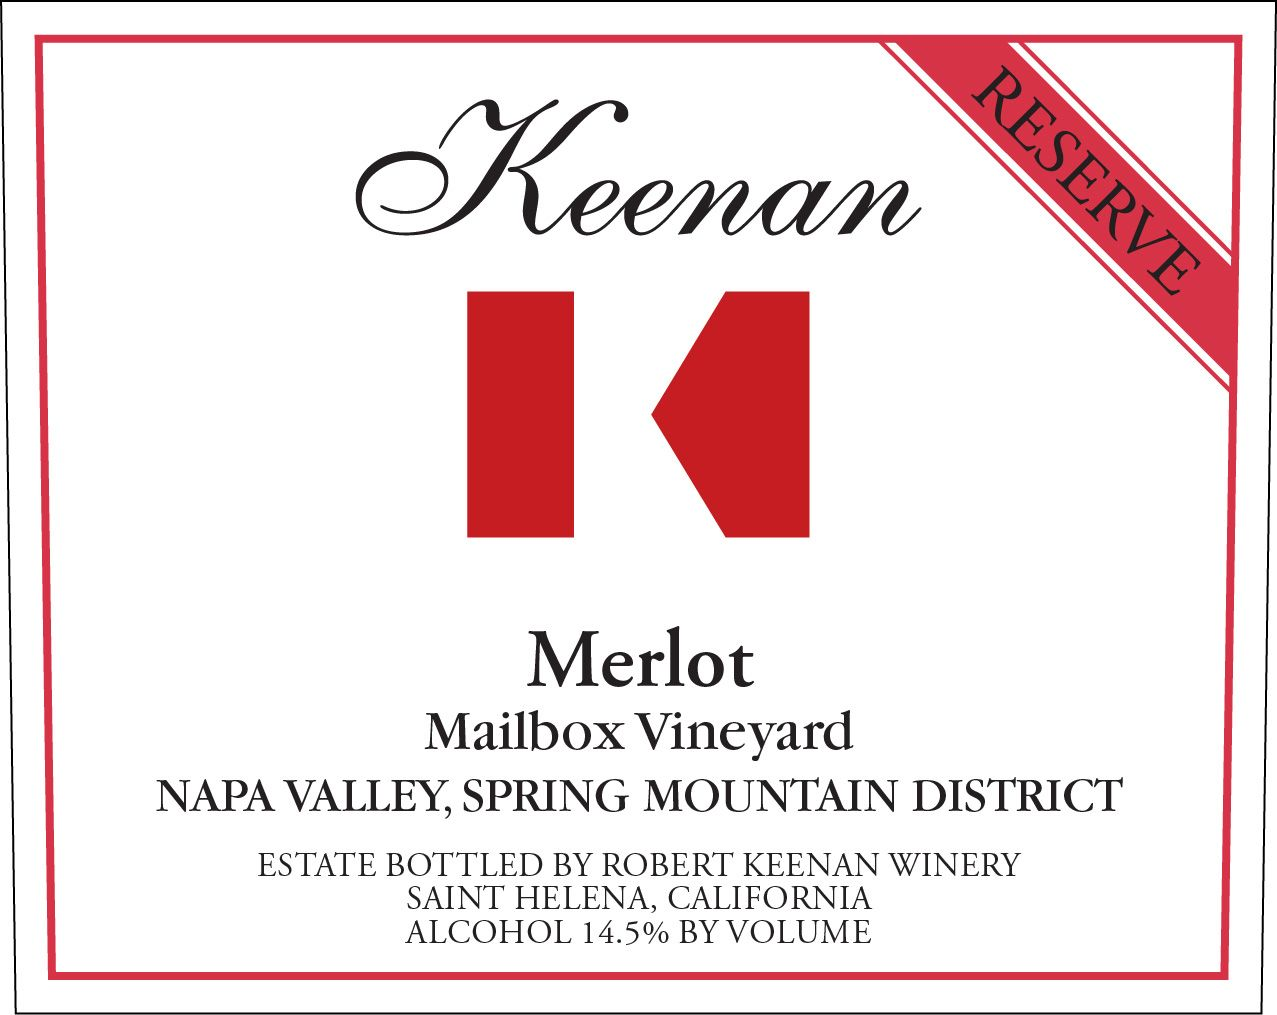 Keenan Mailbox Vineyard Spring Mountain Reserve Merlot 2016  Front Label